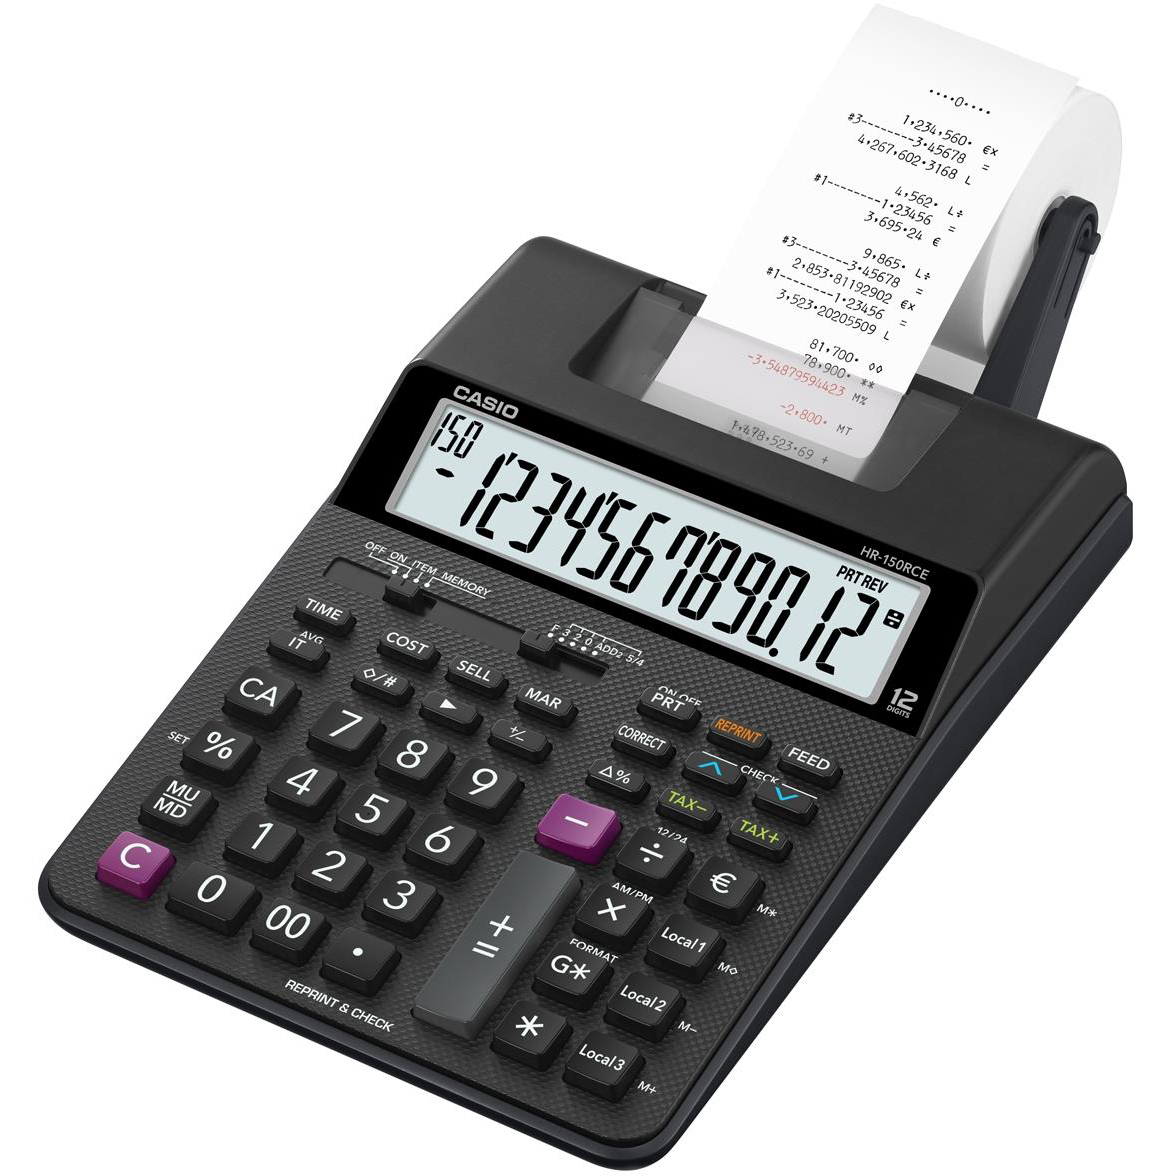 Desktop Calculator Casio Desktop Printing Calculator 12 Digit Display 2 Colour Printing 165x65x295mm Black Ref HR-150RCE